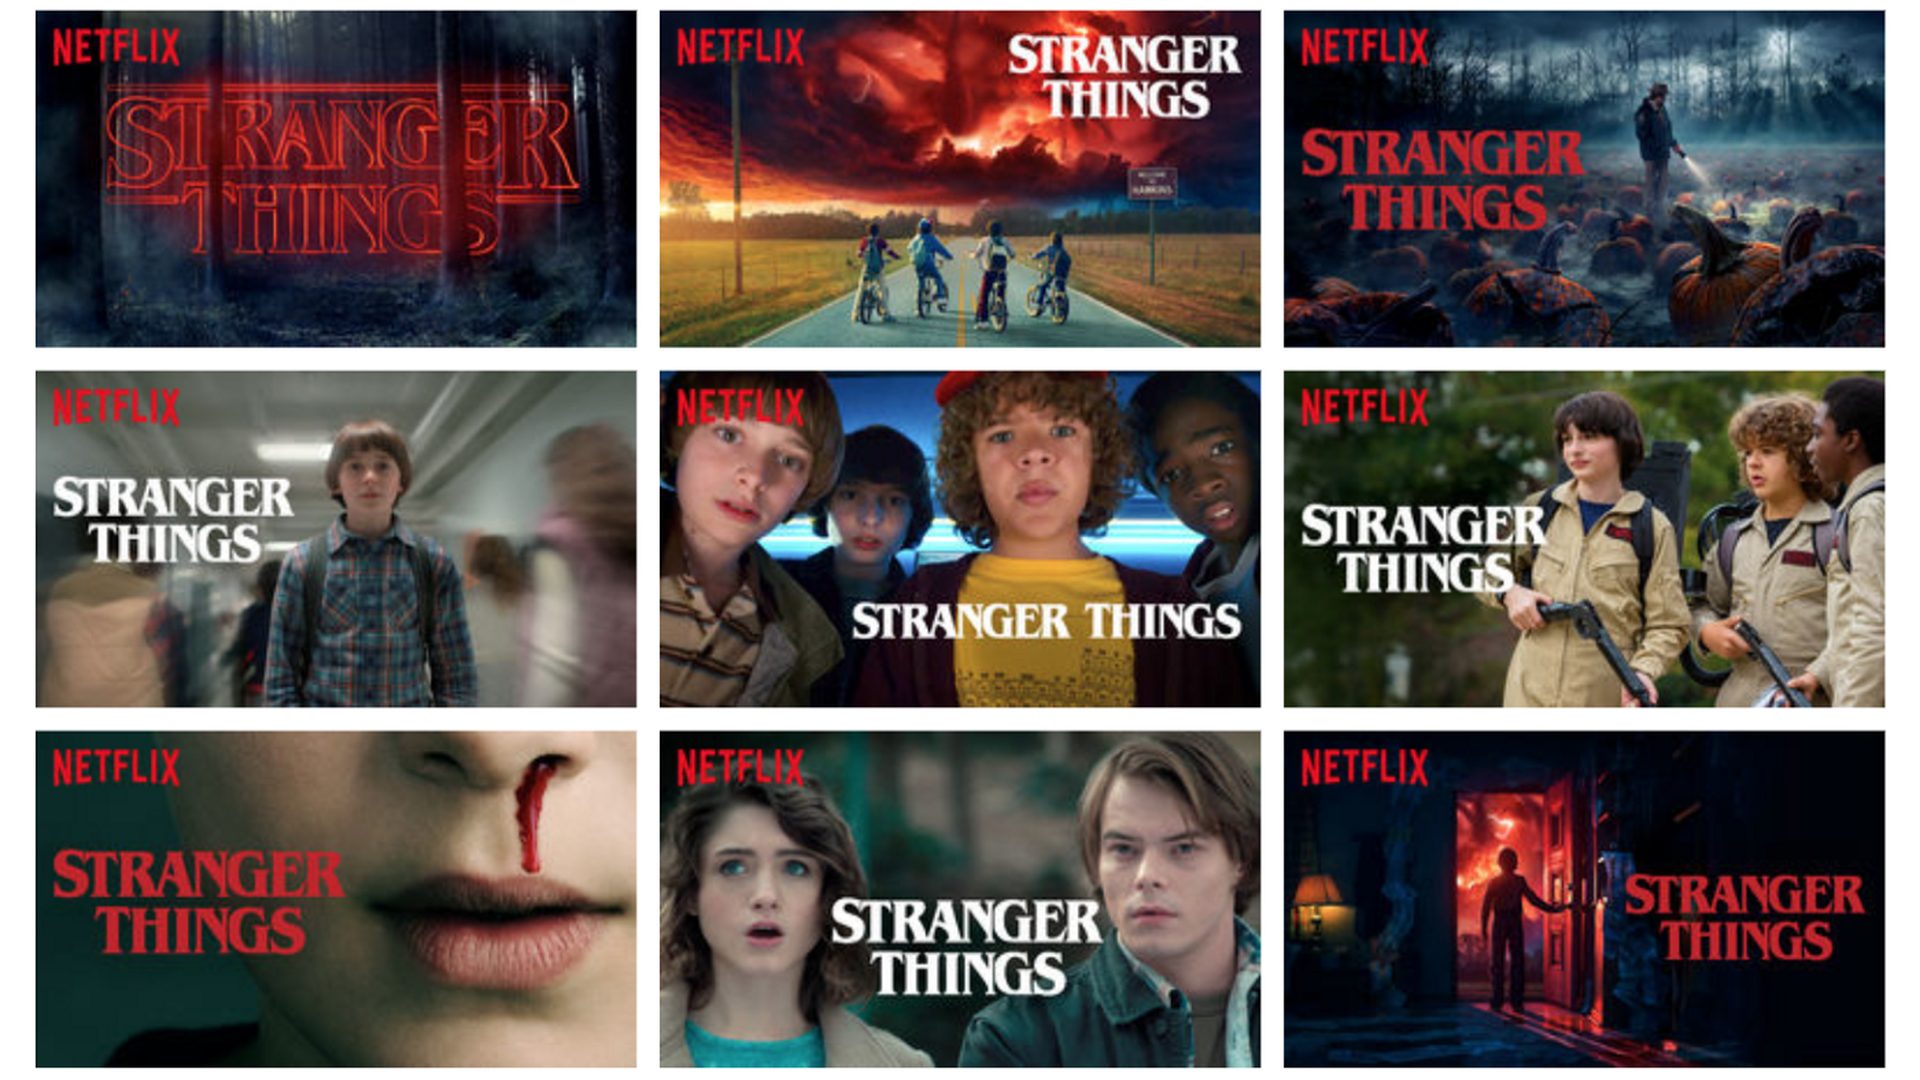 Stranger things compilation. Several pictures of the main characters.